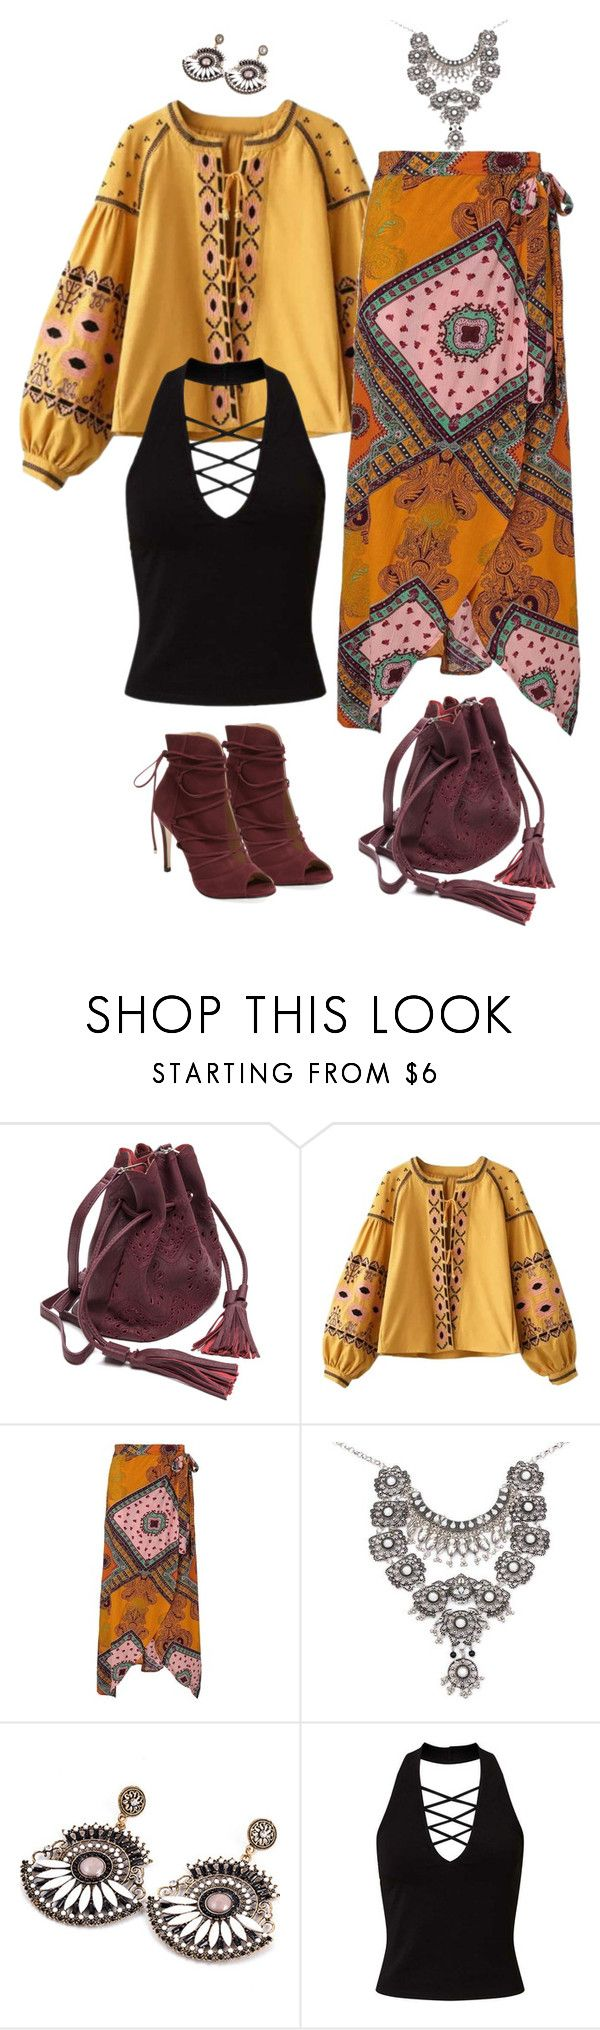 """""""Bohemian Autumn"""" by ms-ironickel ❤ liked on Polyvore featuring Miss Selfridge and Elorie"""